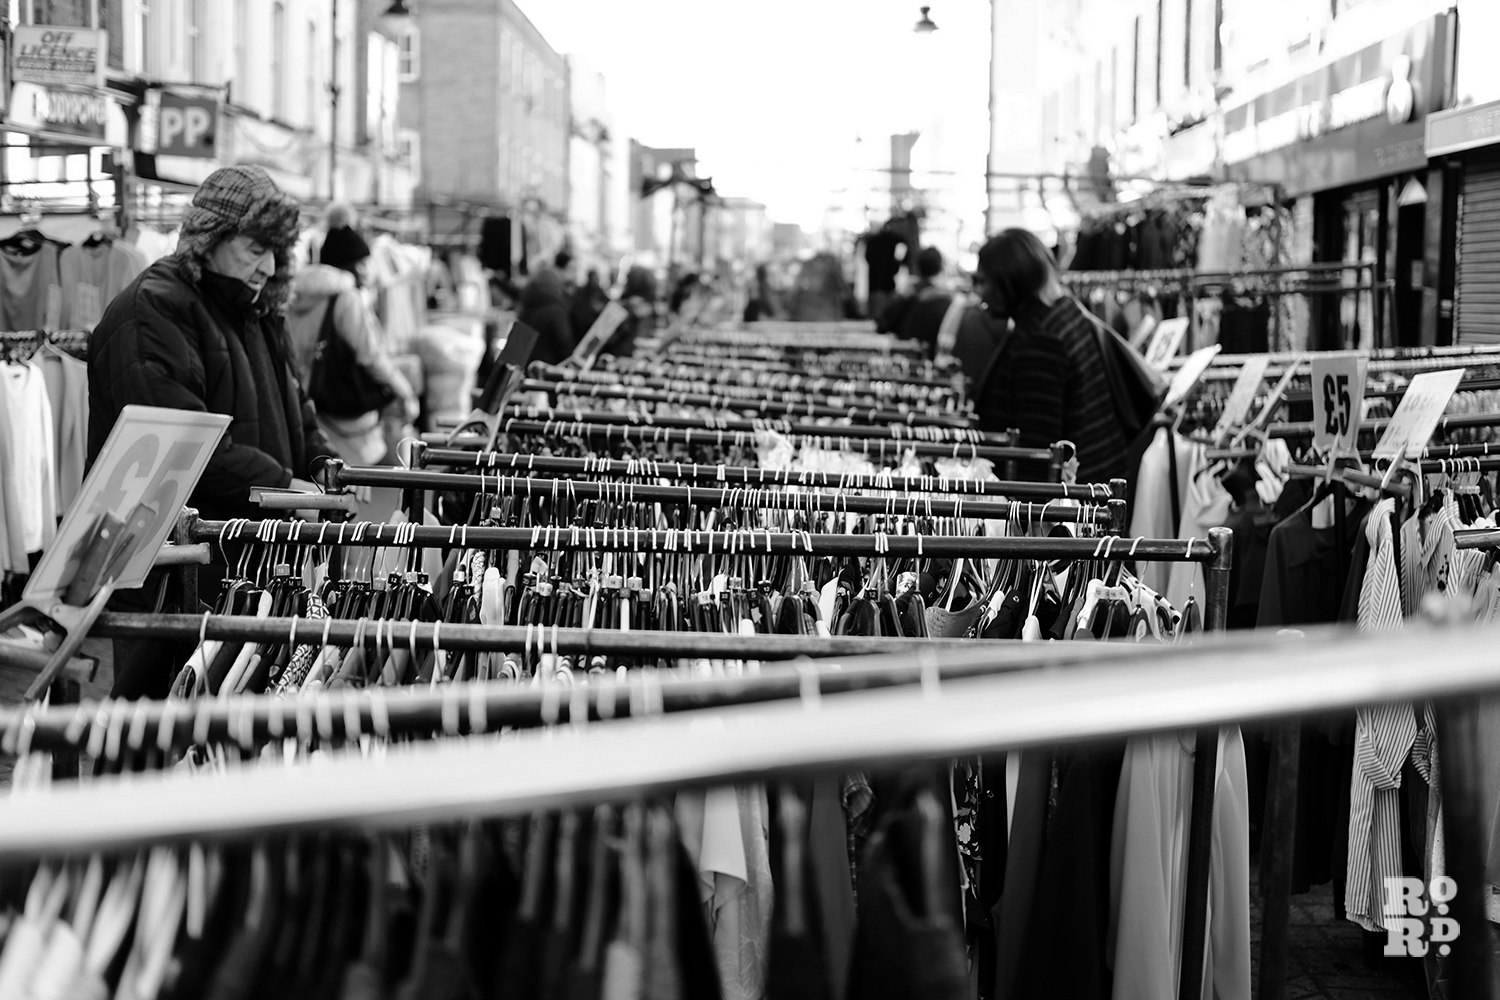 Roman Road Market view of clothes rails